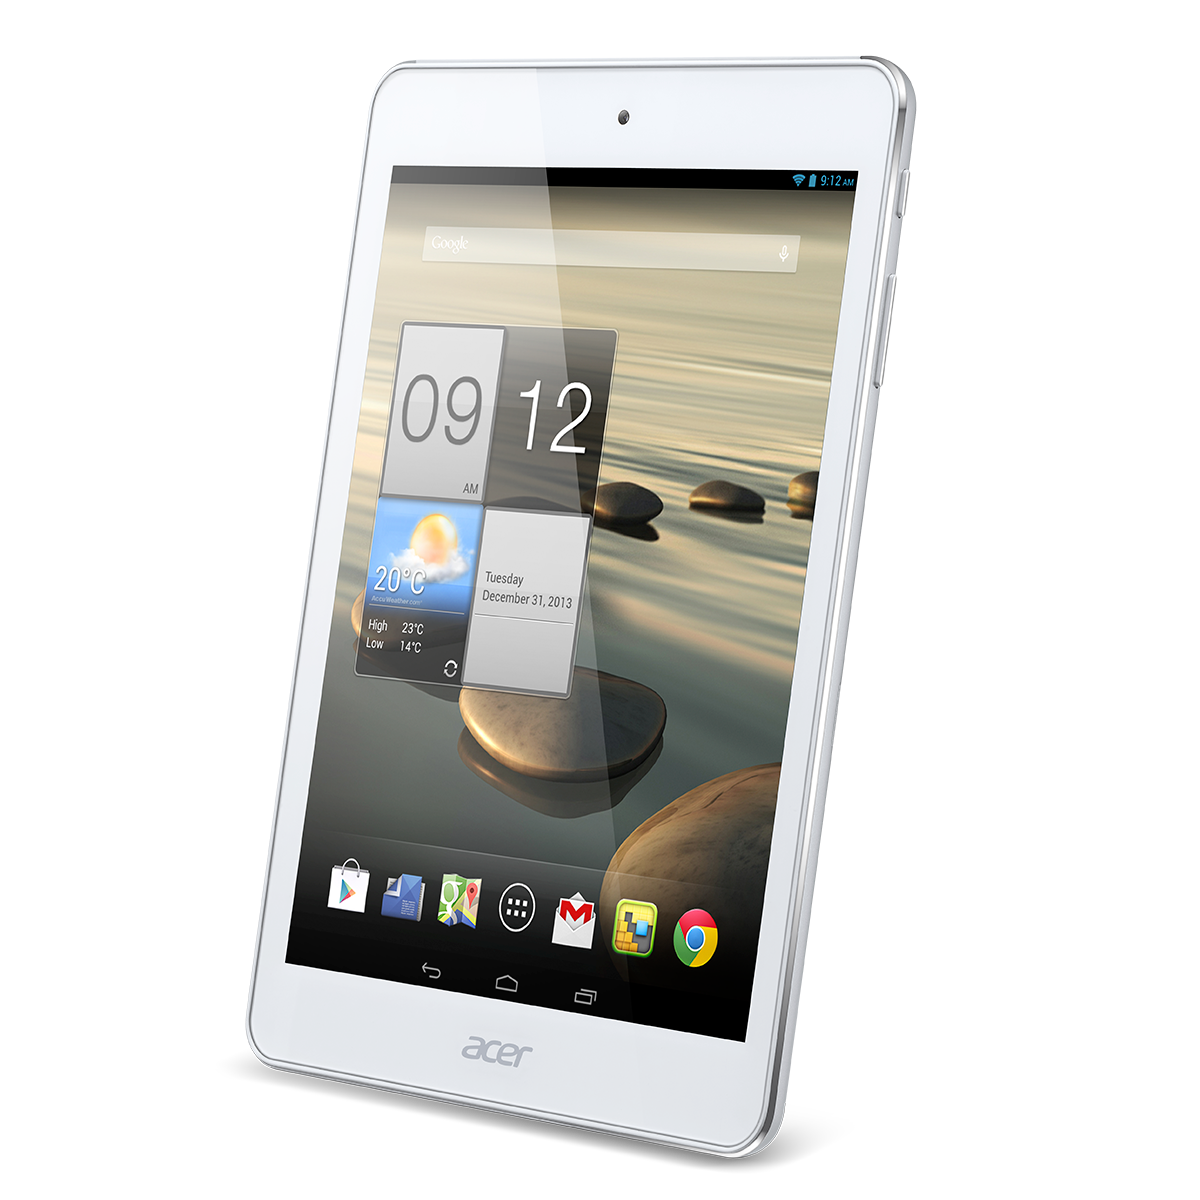 Acer-Tablet-Iconia-A1-830-zoom-big